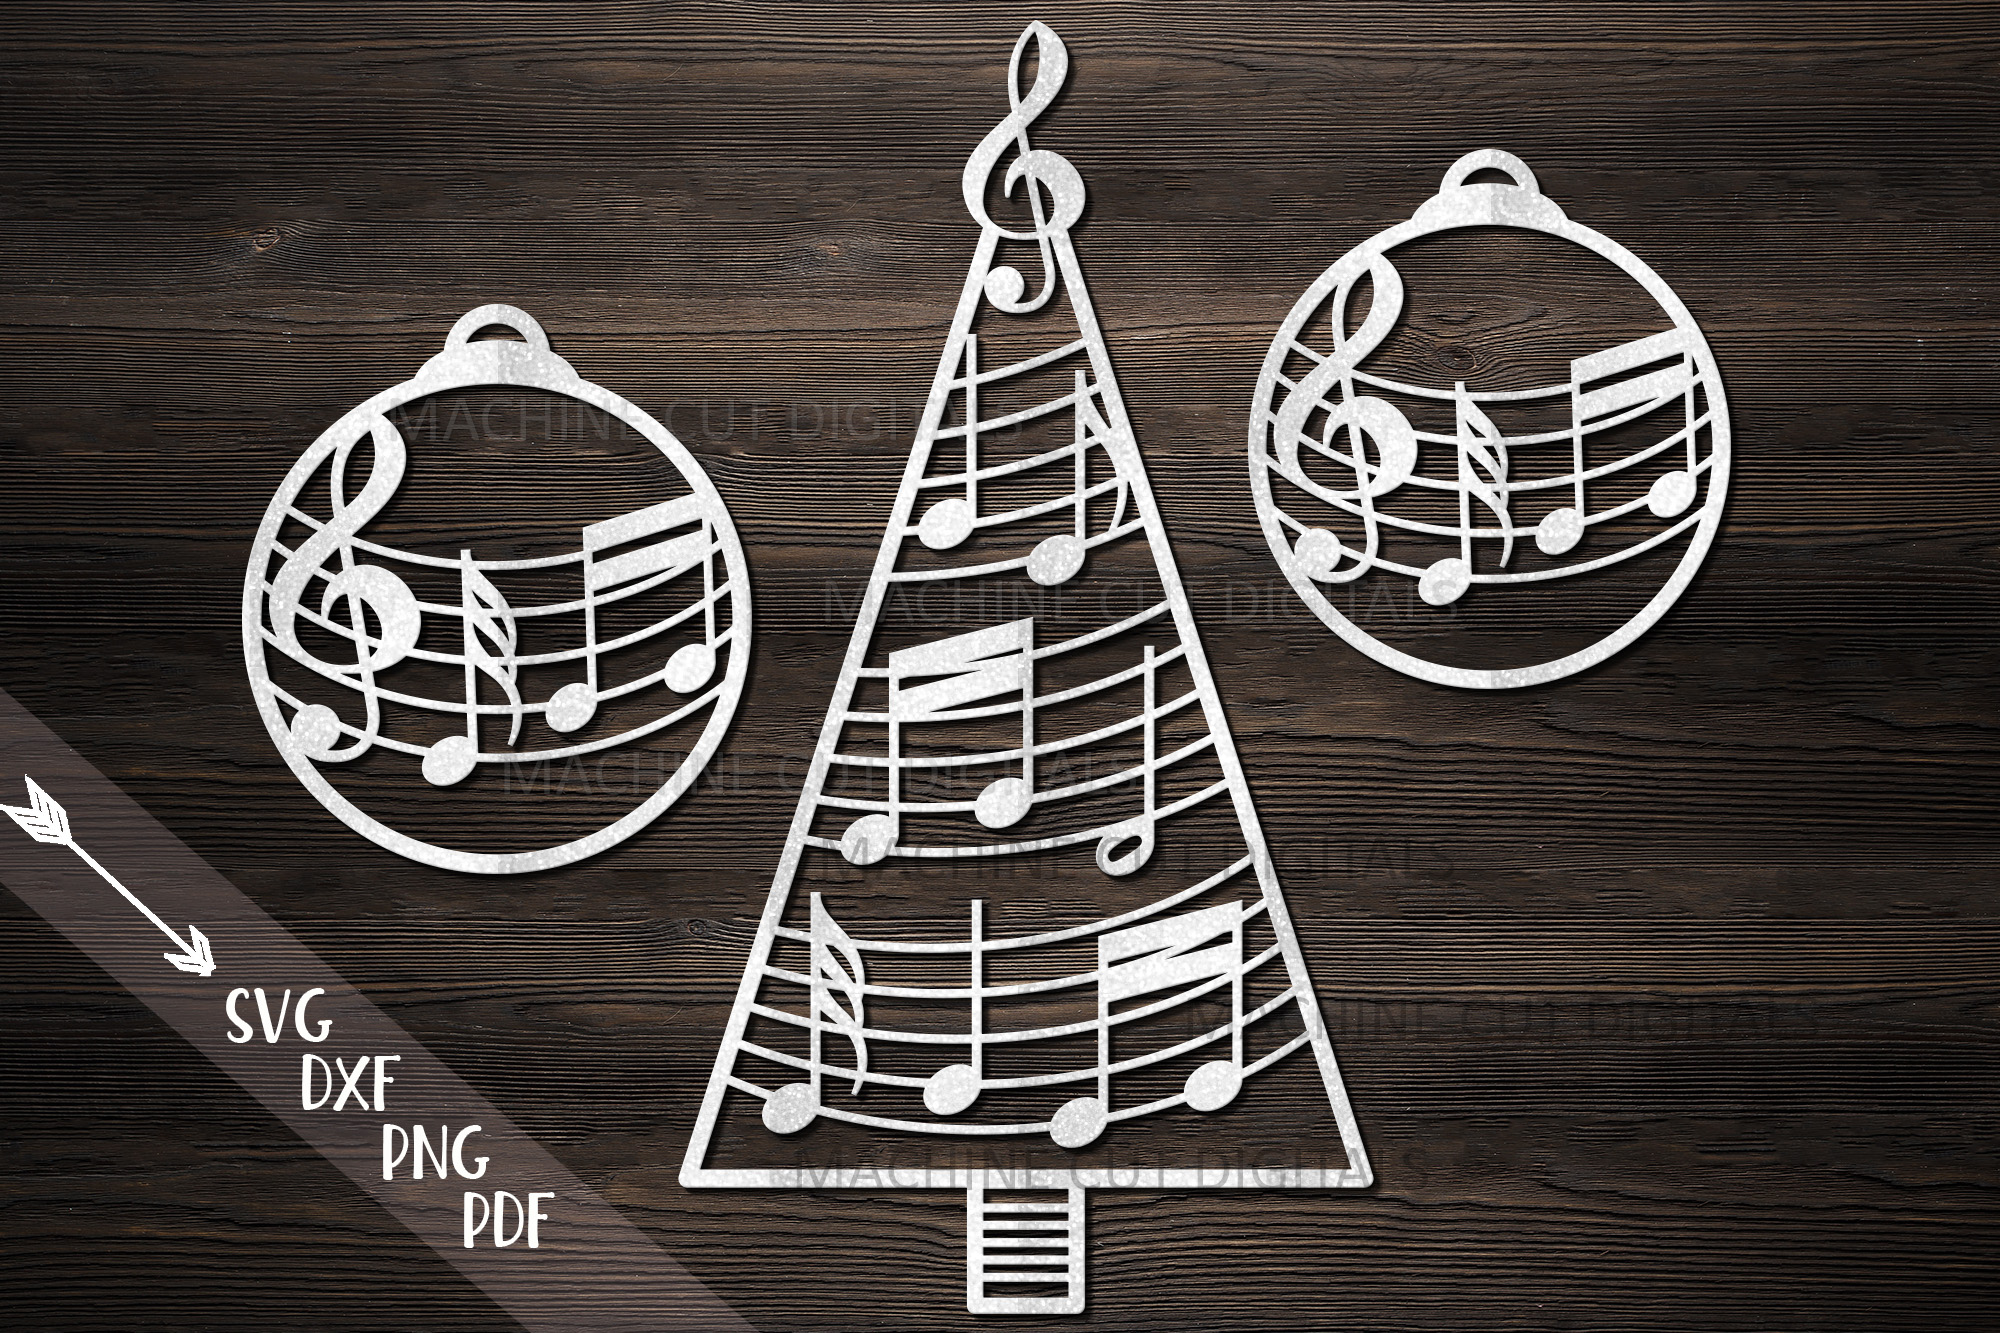 Download Free Music Christmas Tree Decorations Svg Cut Graphic By Cornelia Creative Fabrica for Cricut Explore, Silhouette and other cutting machines.